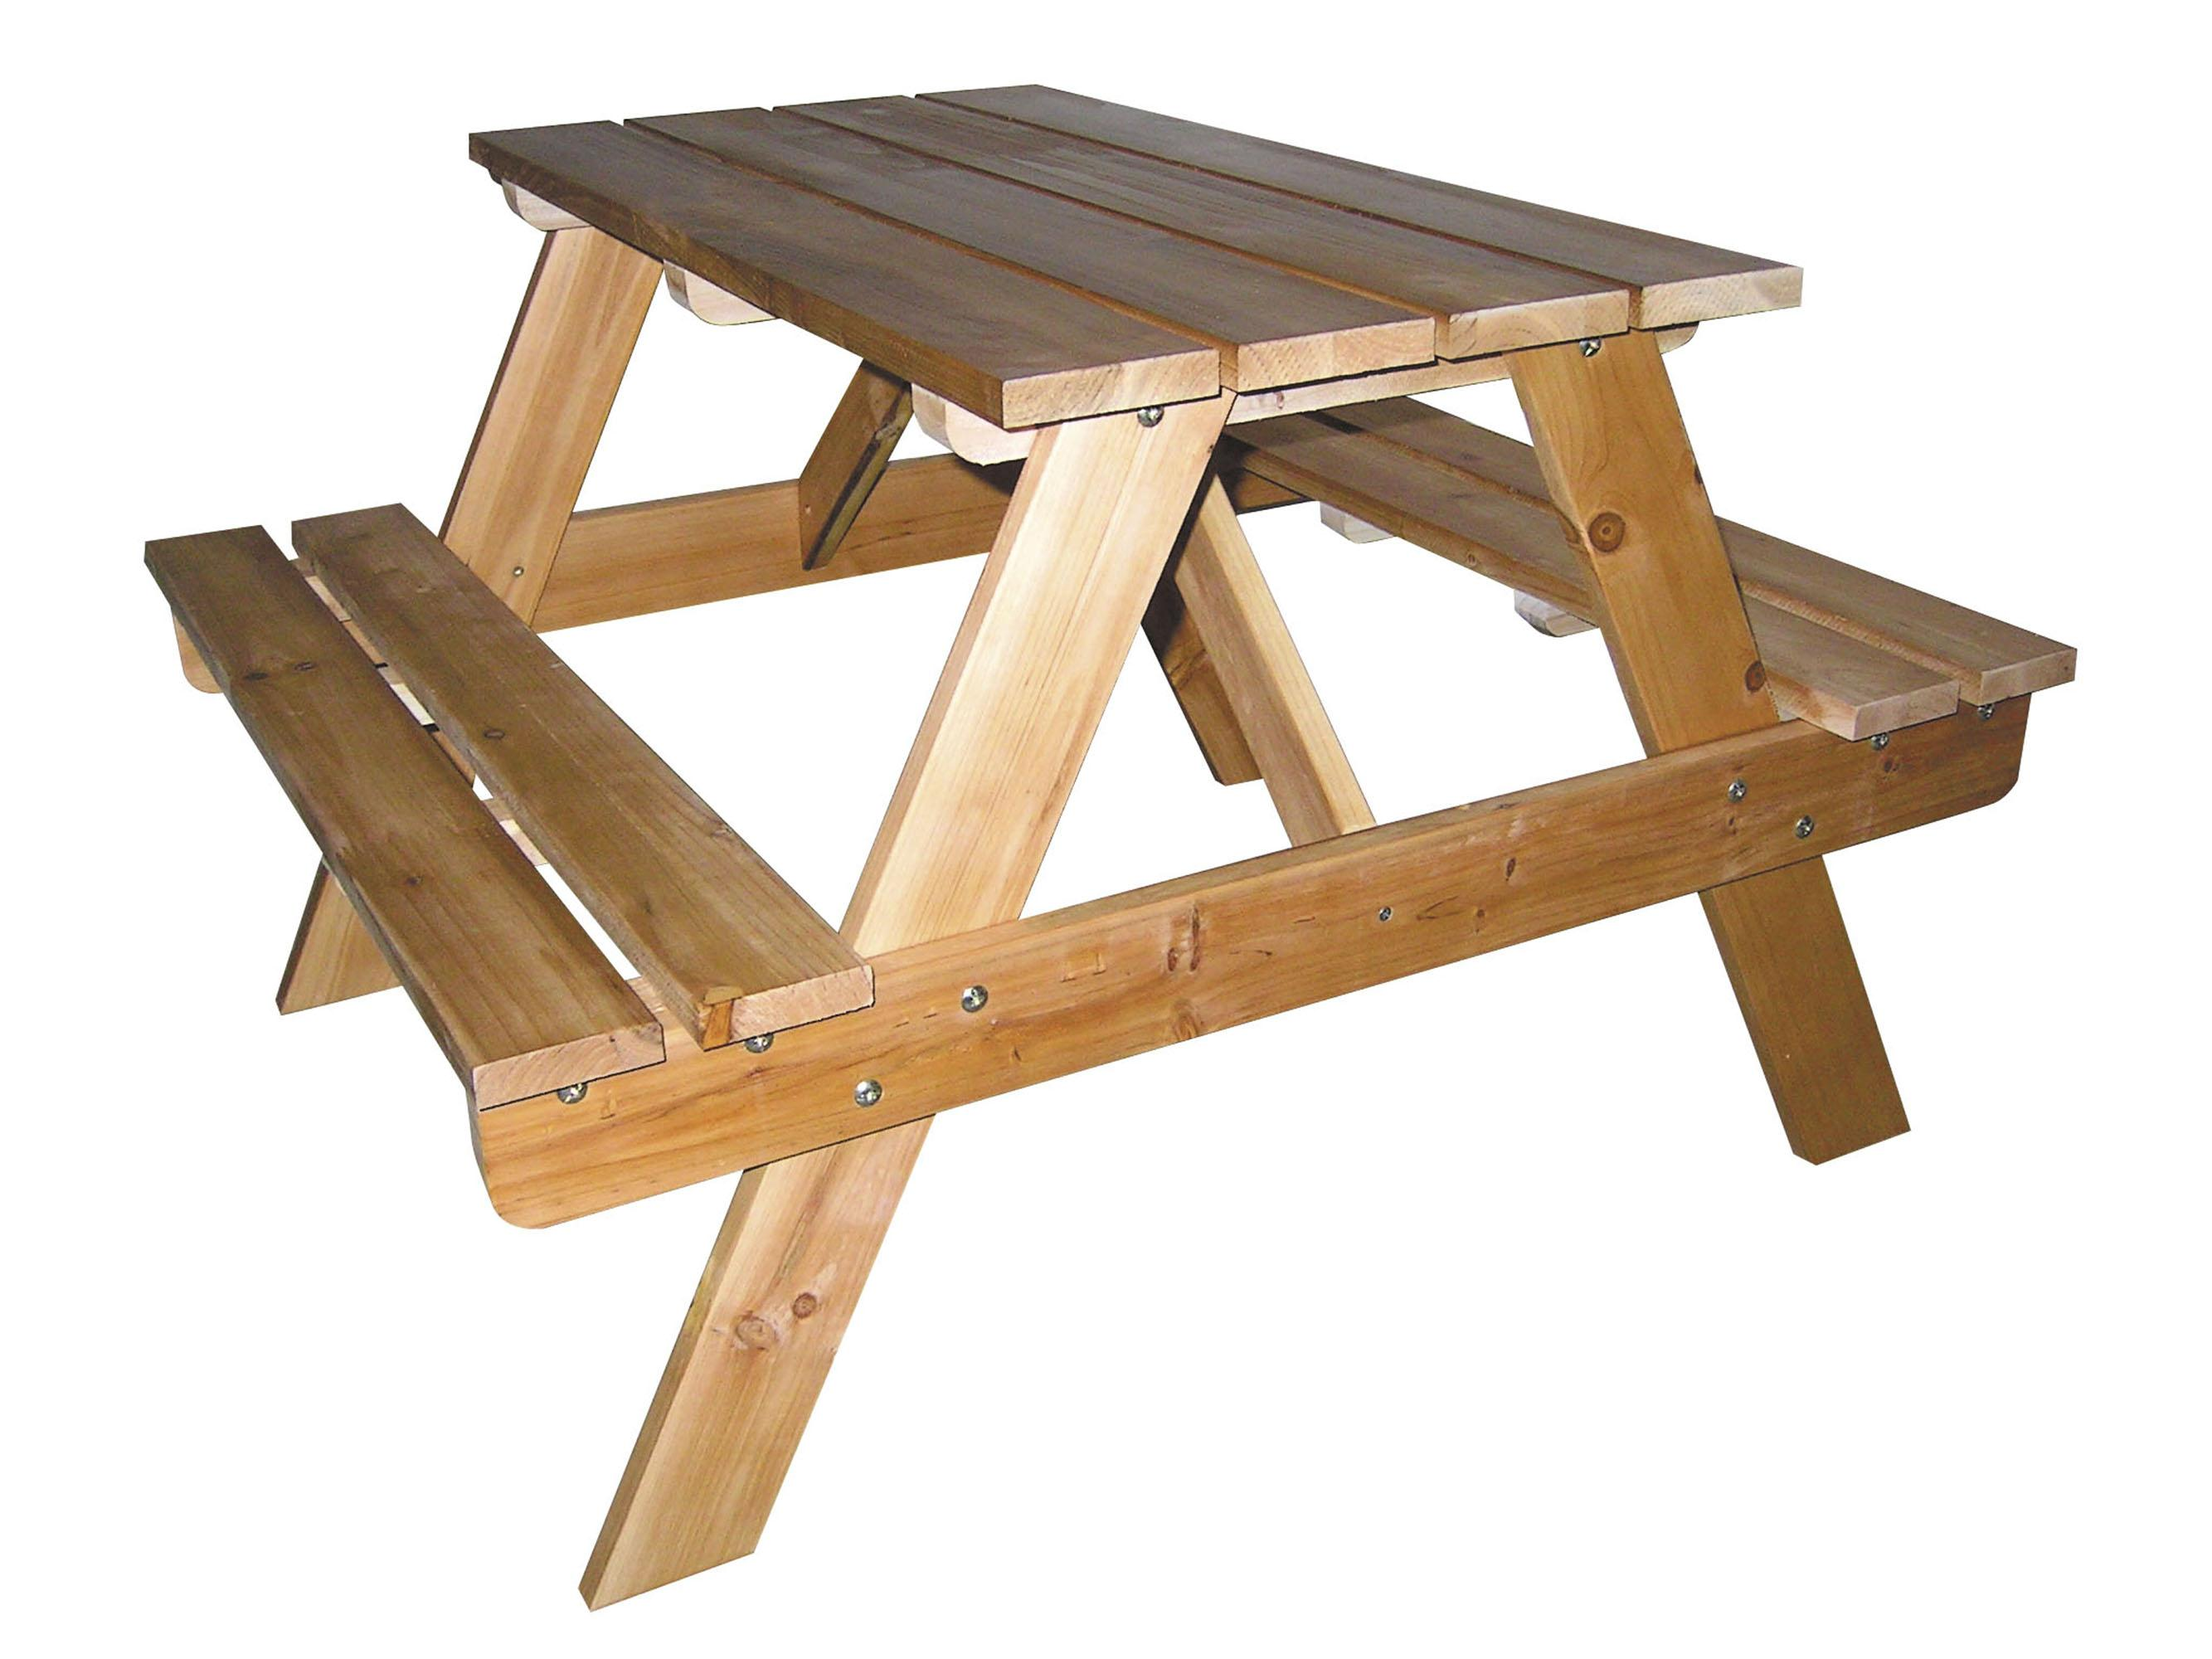 ... Kids Indoor/Outdoor Picnic Table by OJ Commerce H-63 - $121.04